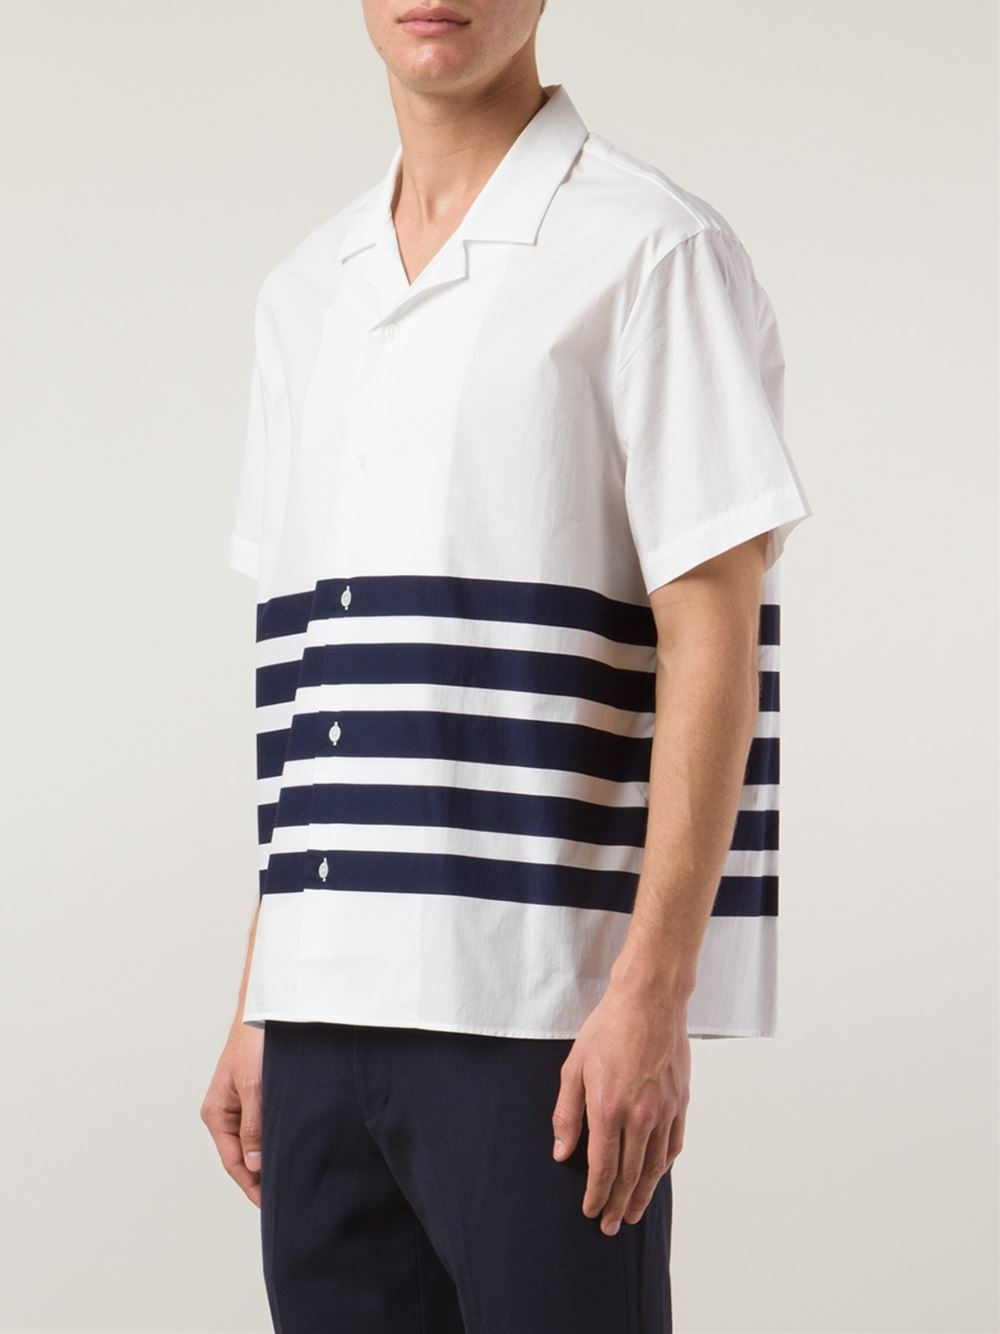 lyst acne studios 39 ody 39 striped shirt in white for men